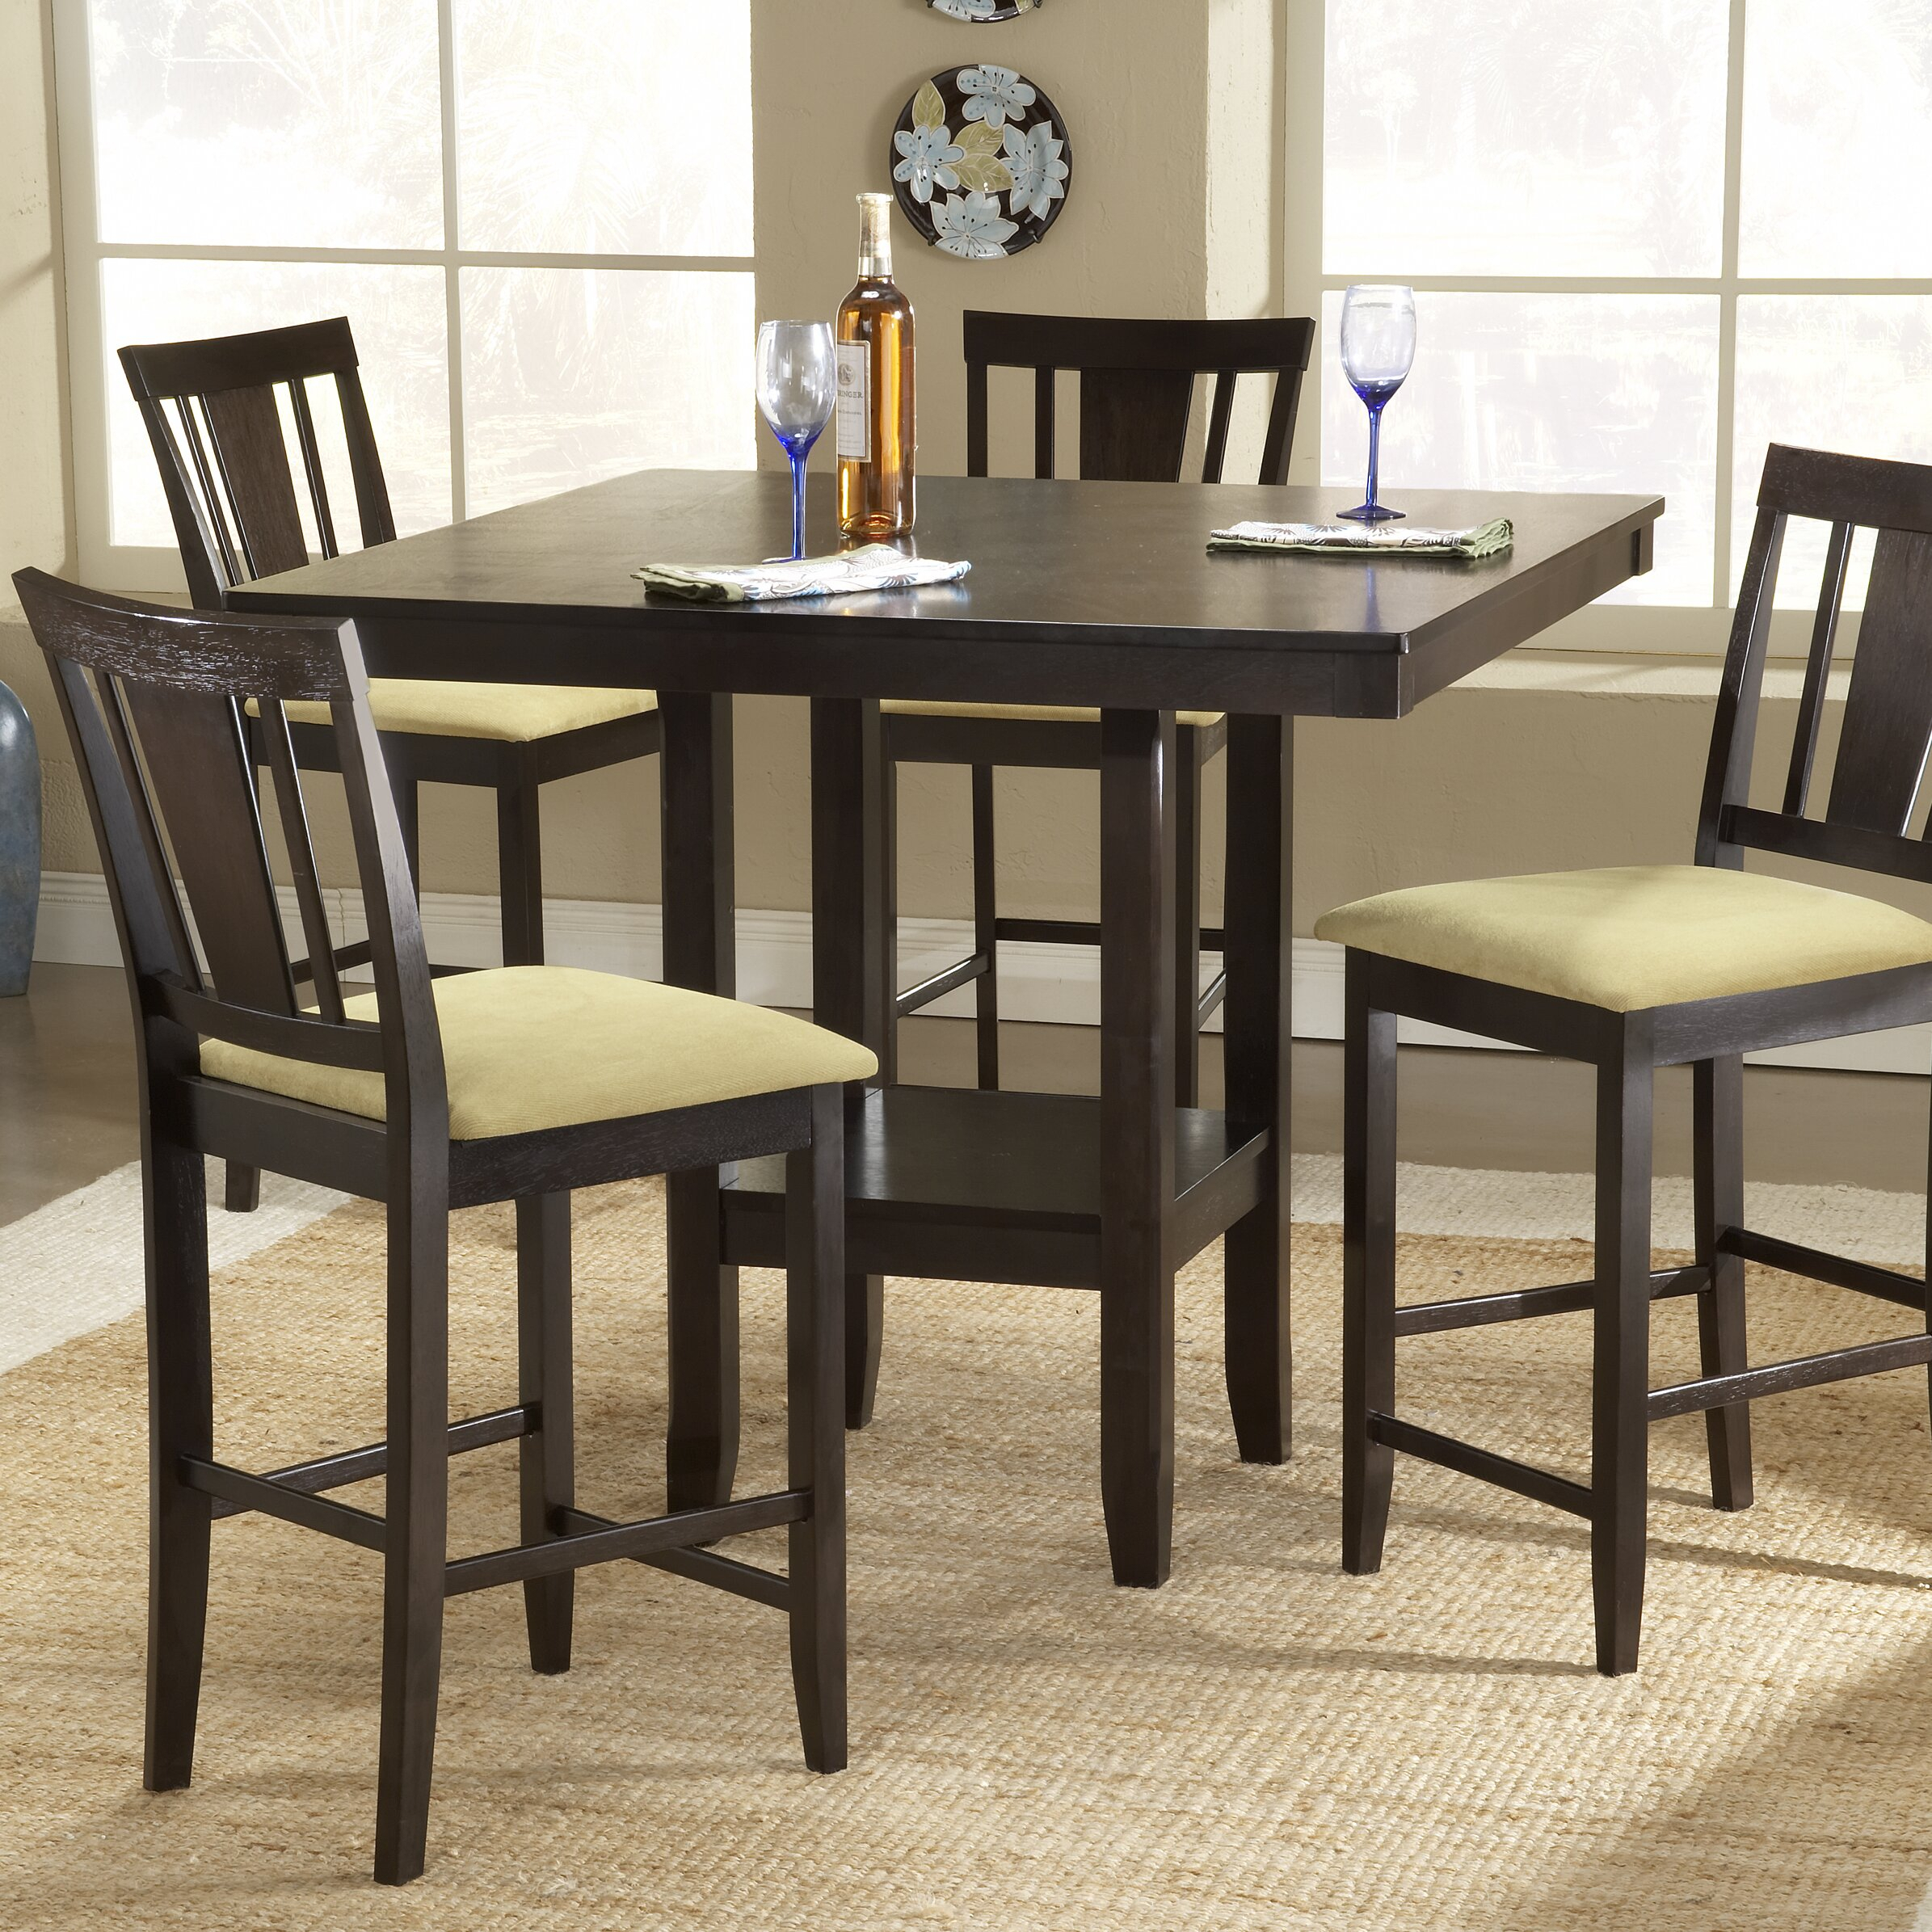 Hillsdale Arcadia Counter Height Dining Table & Reviews Throughout Most Recently Released Mciver Counter Height Dining Tables (View 7 of 15)